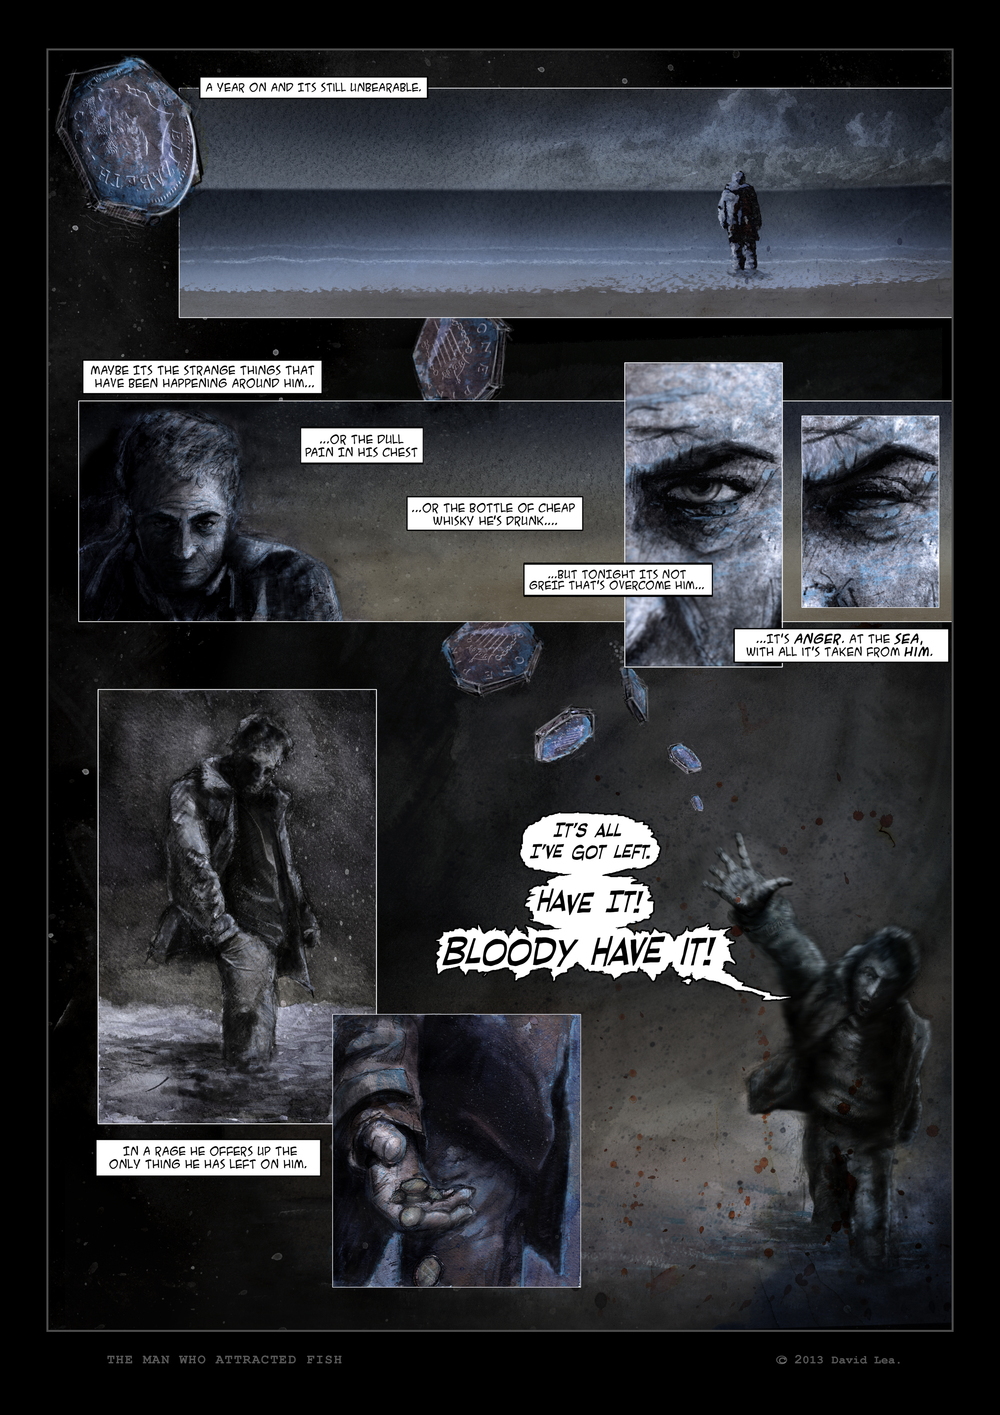 TMWAF_Graphic novel scene - page 2